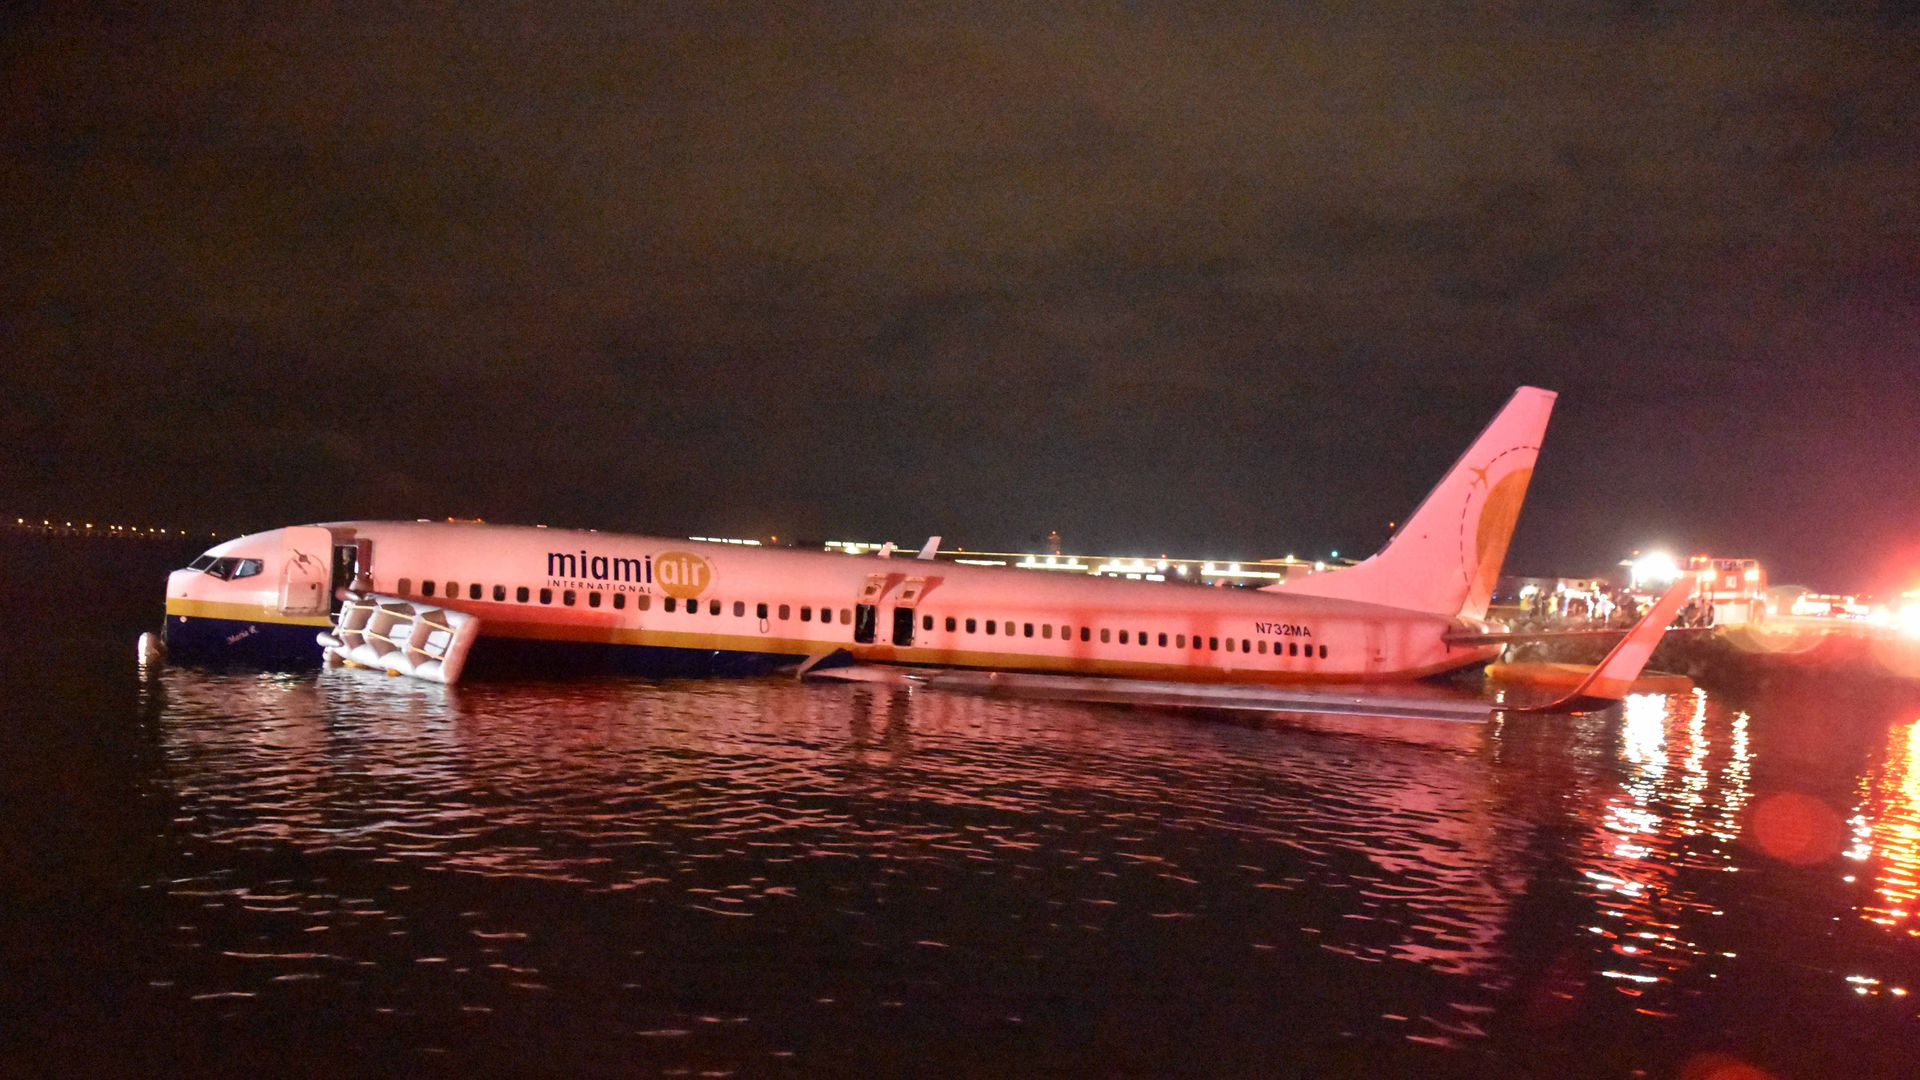 The Boeing 737 aircraftthat slid off the runway at Naval Air Station Jacksonville, Florida.